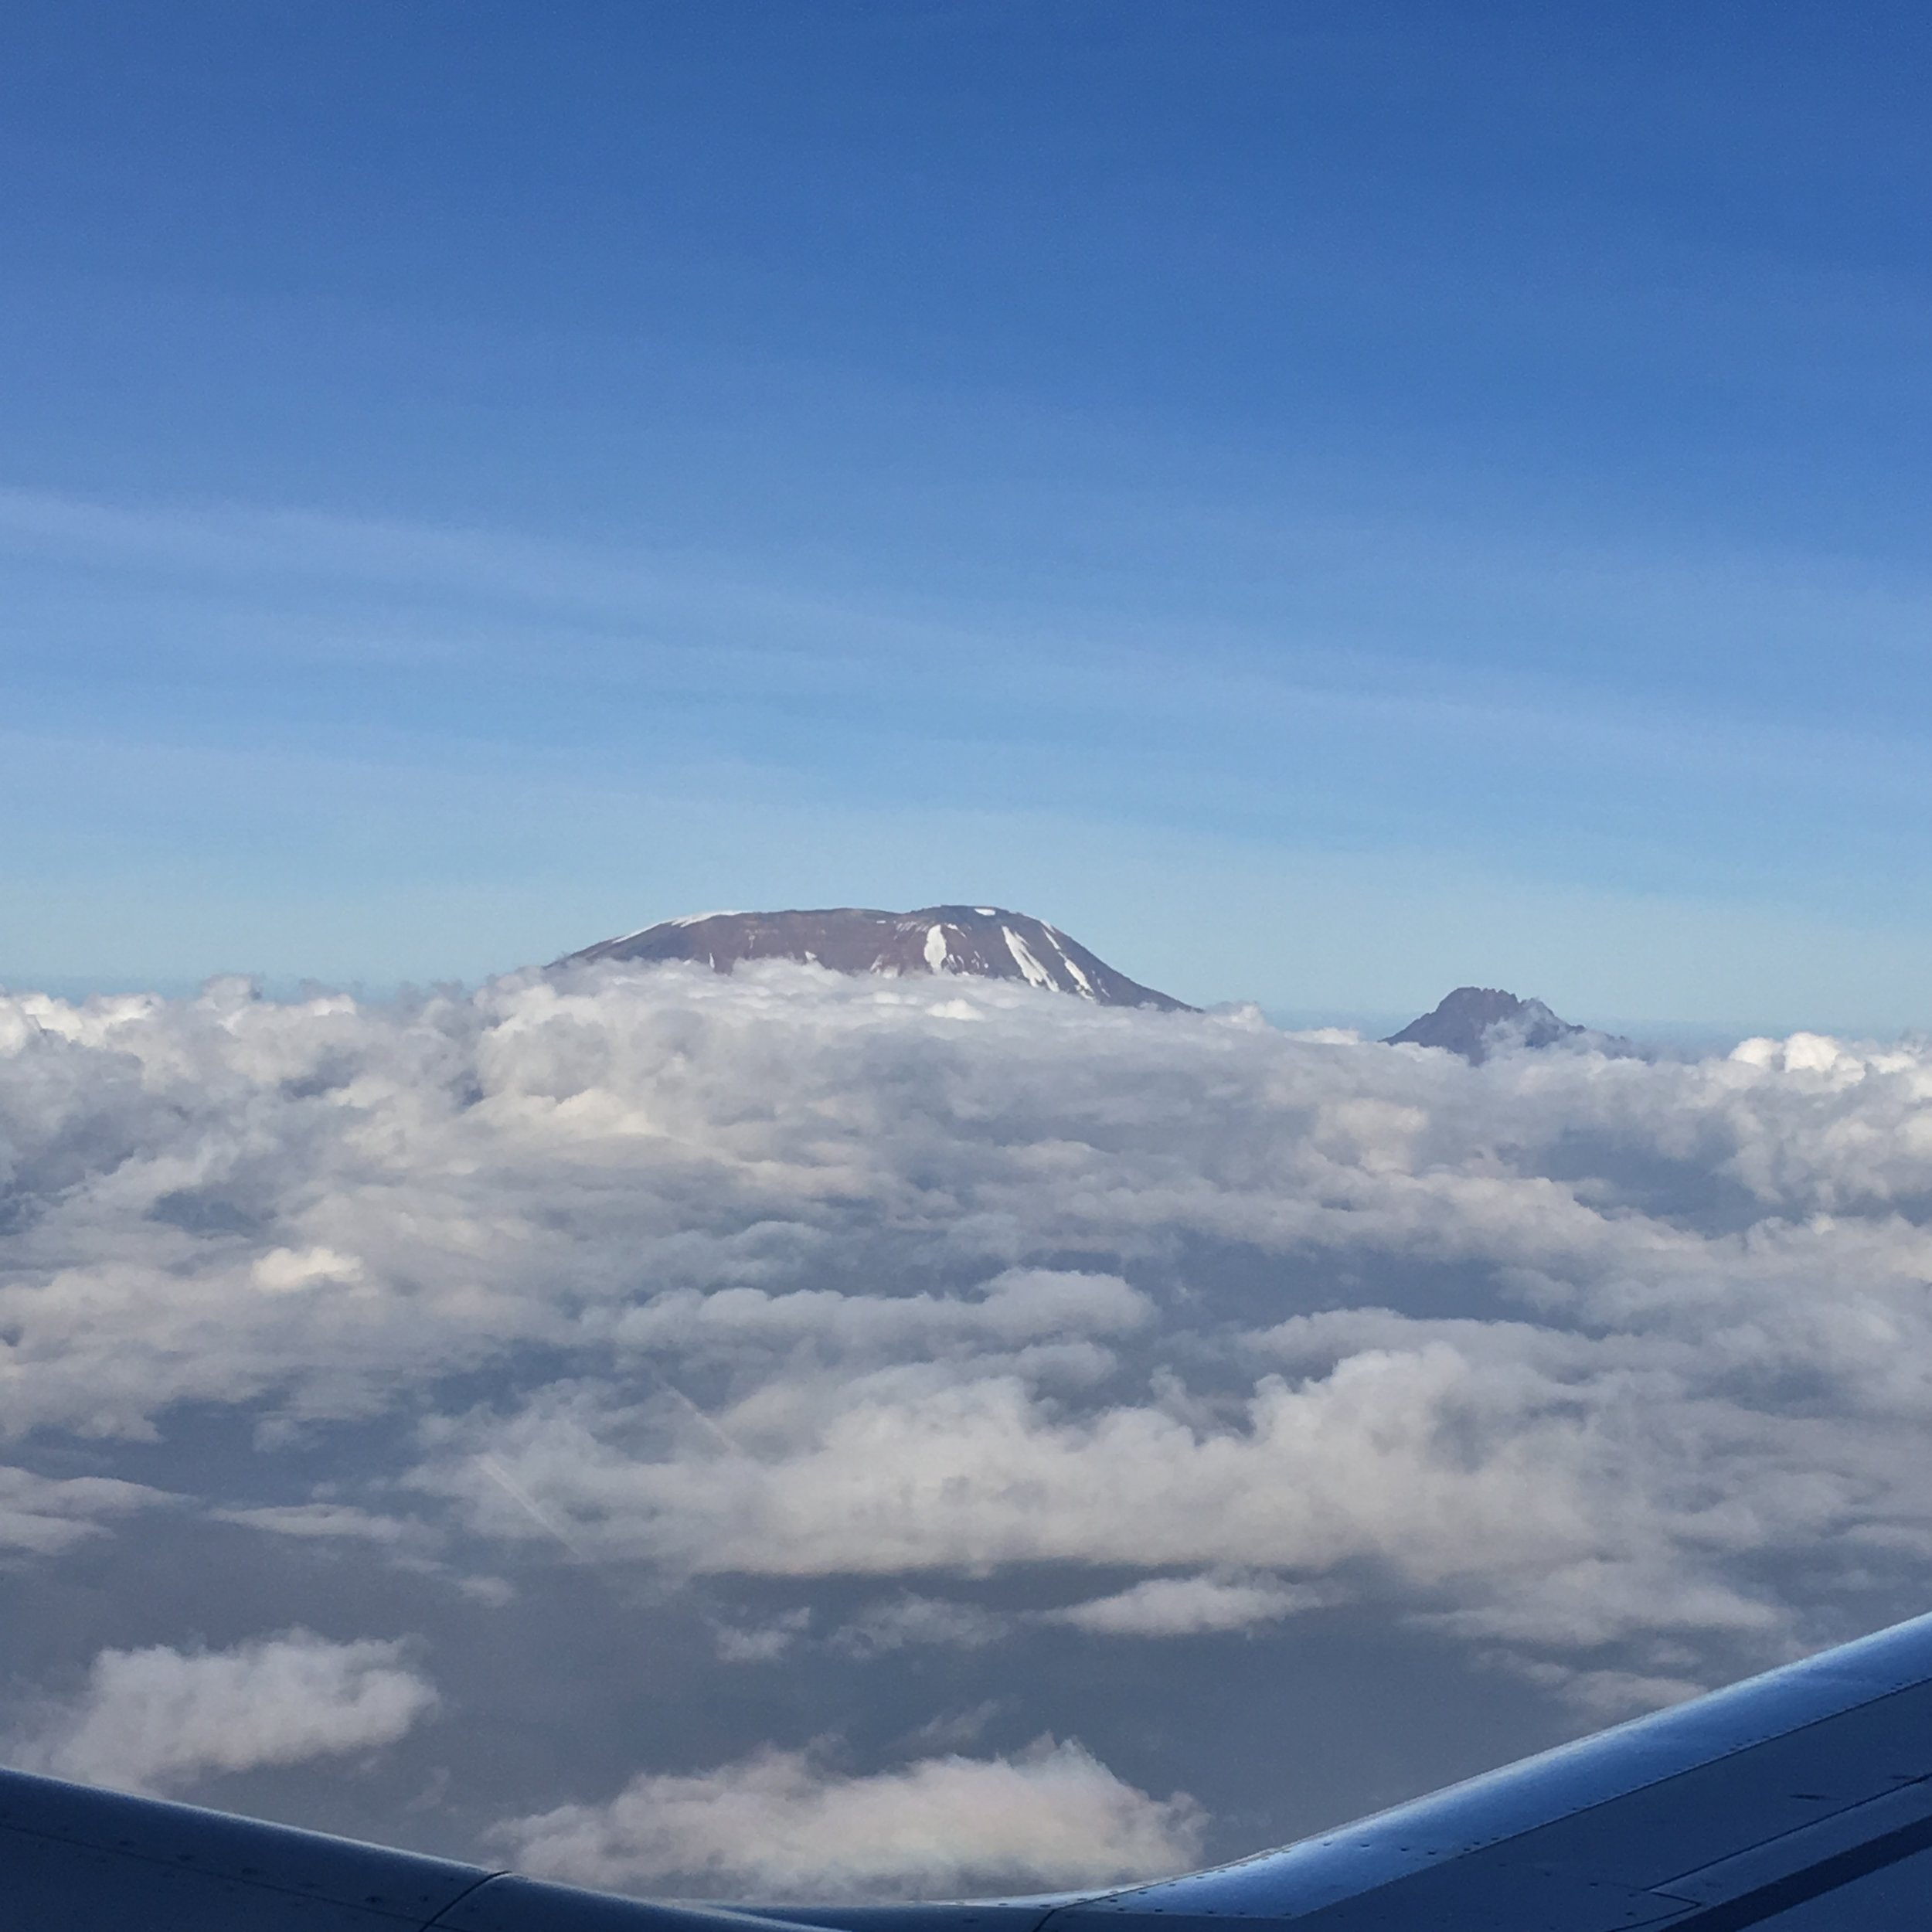 A final perspective from the airplane headed home. Kili on the left, Mawenzi standing tall on the right.I was in tears looking at this, in disbelief of what I had accomplished.